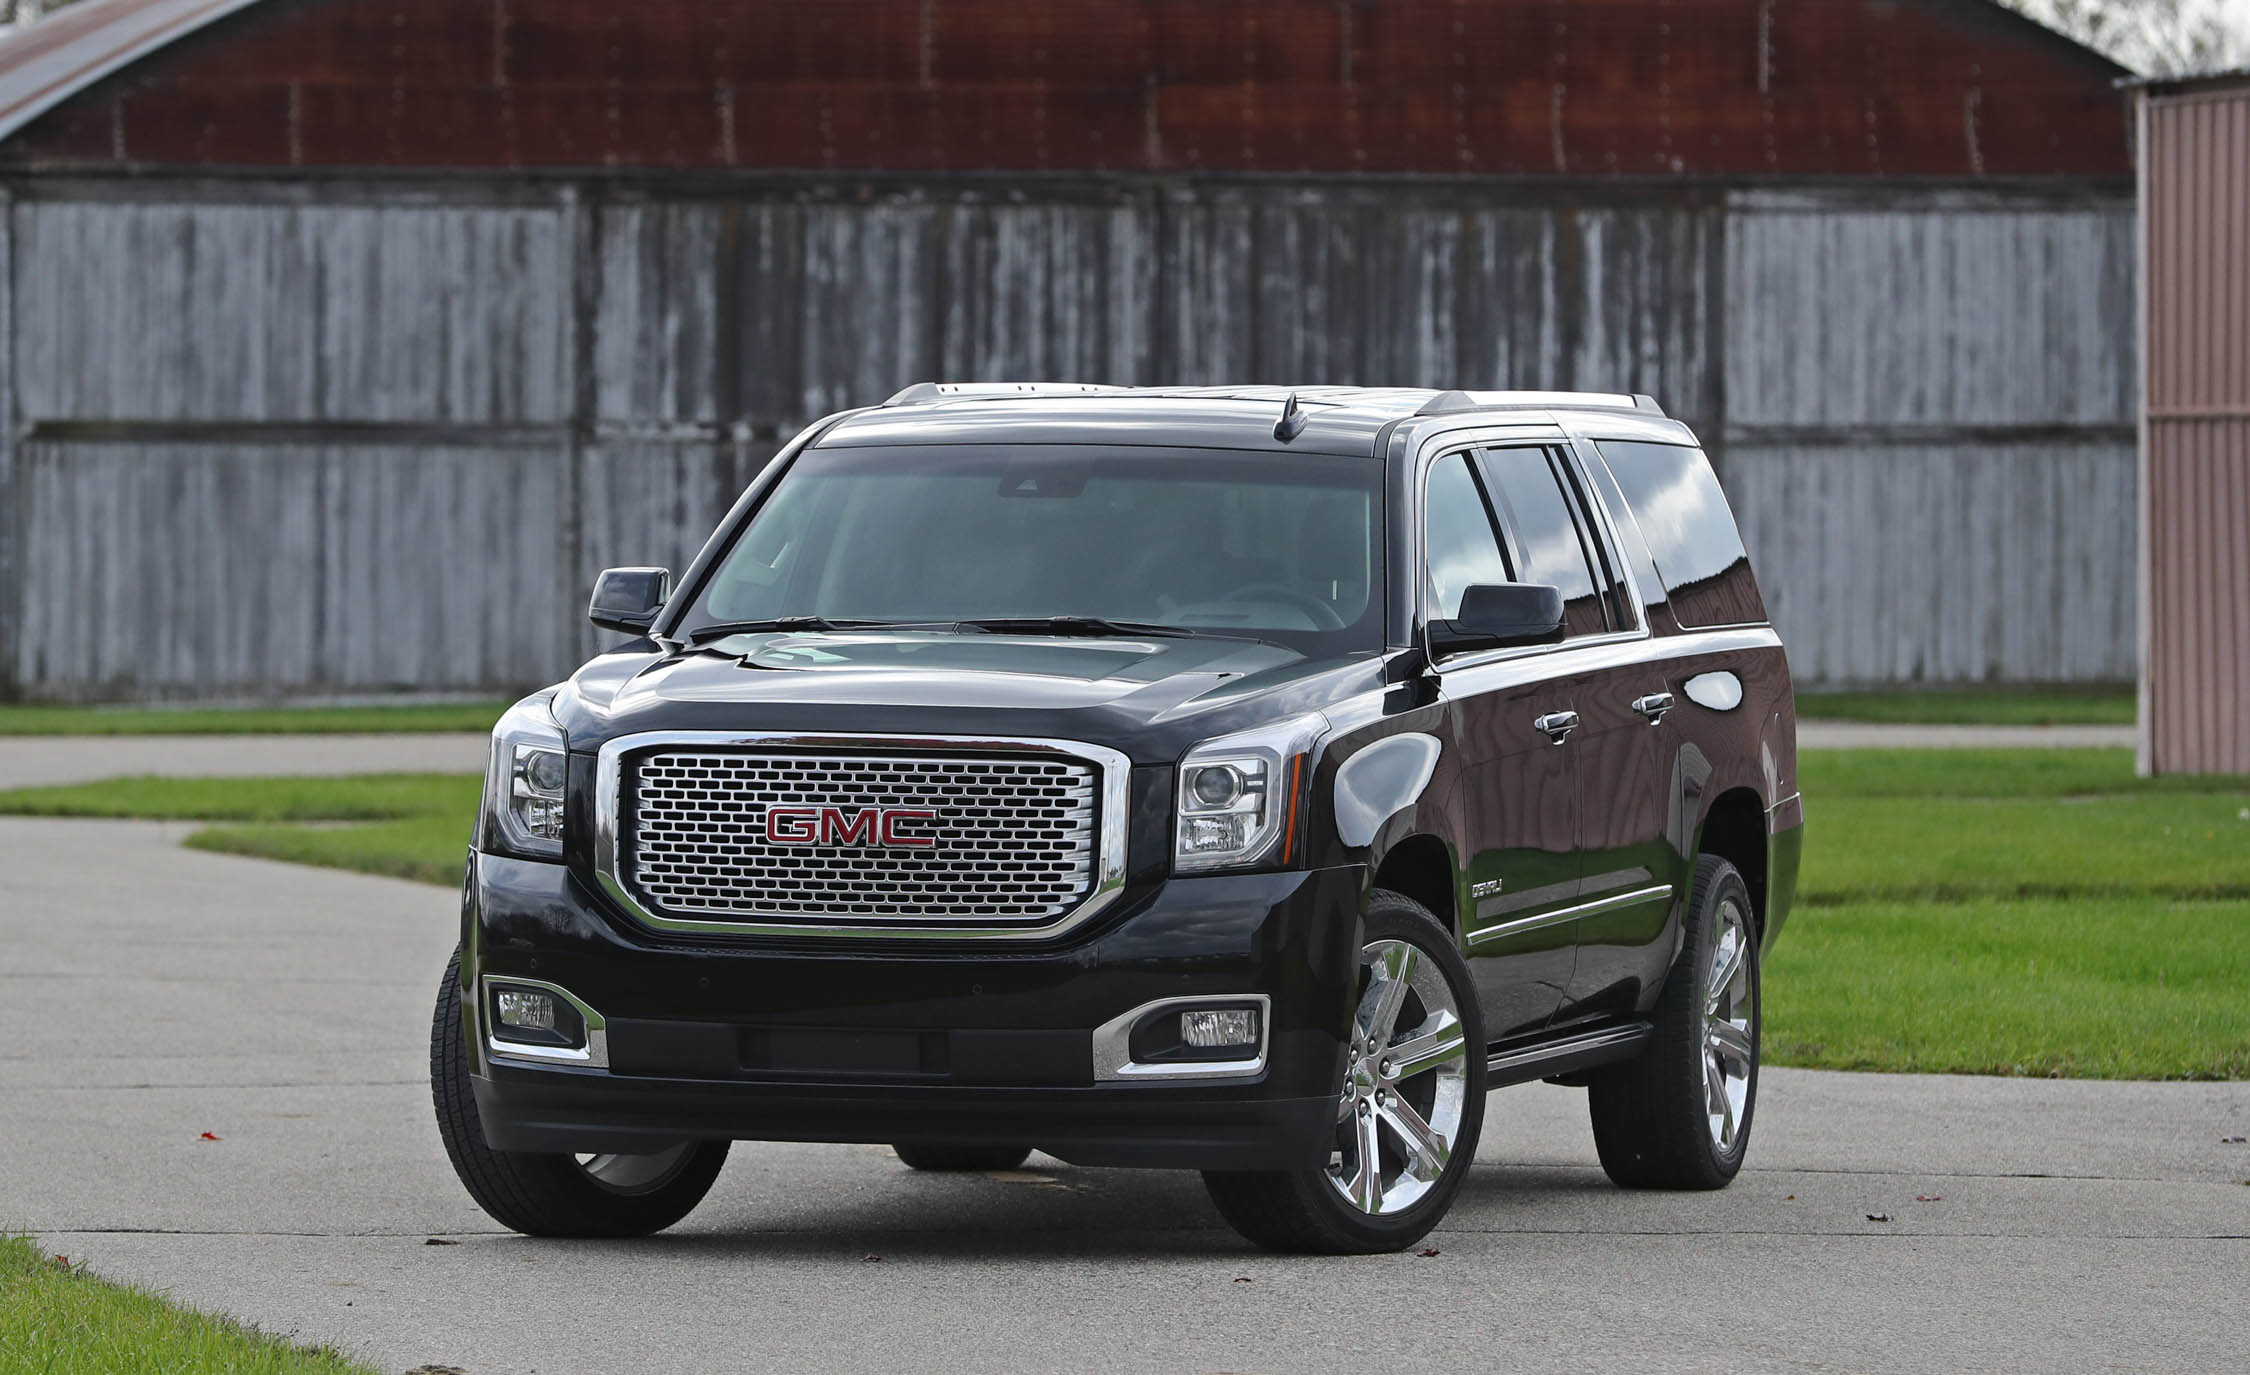 2017 Gmc Yukon Xl Denali Exterior Front (Photo 3 of 26)